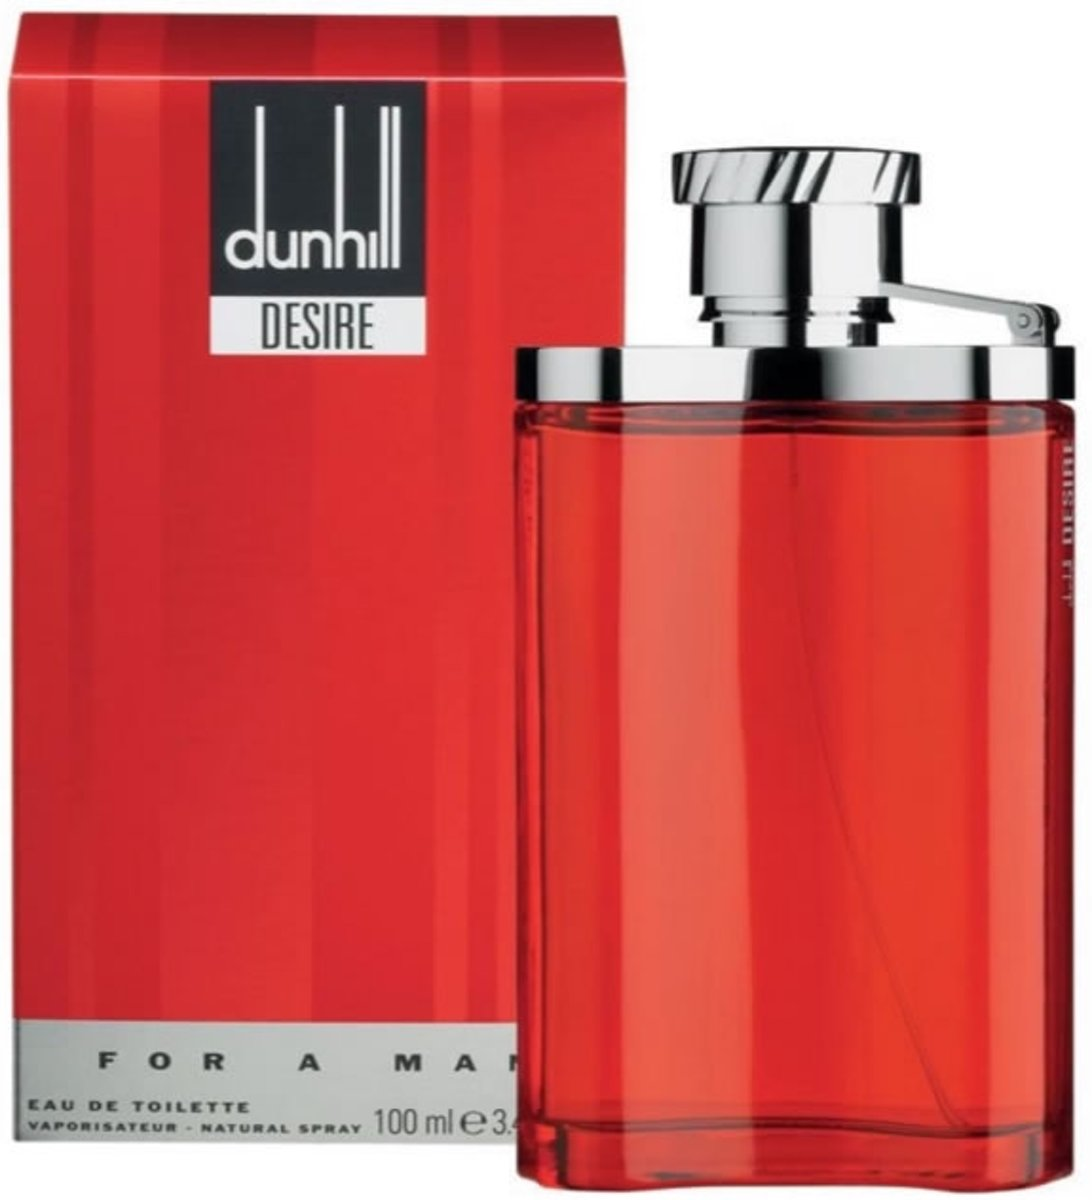 MULTI BUNDEL 3 stuks Dunhill London Desire For A Man Eau De Toilette Spray 100ml